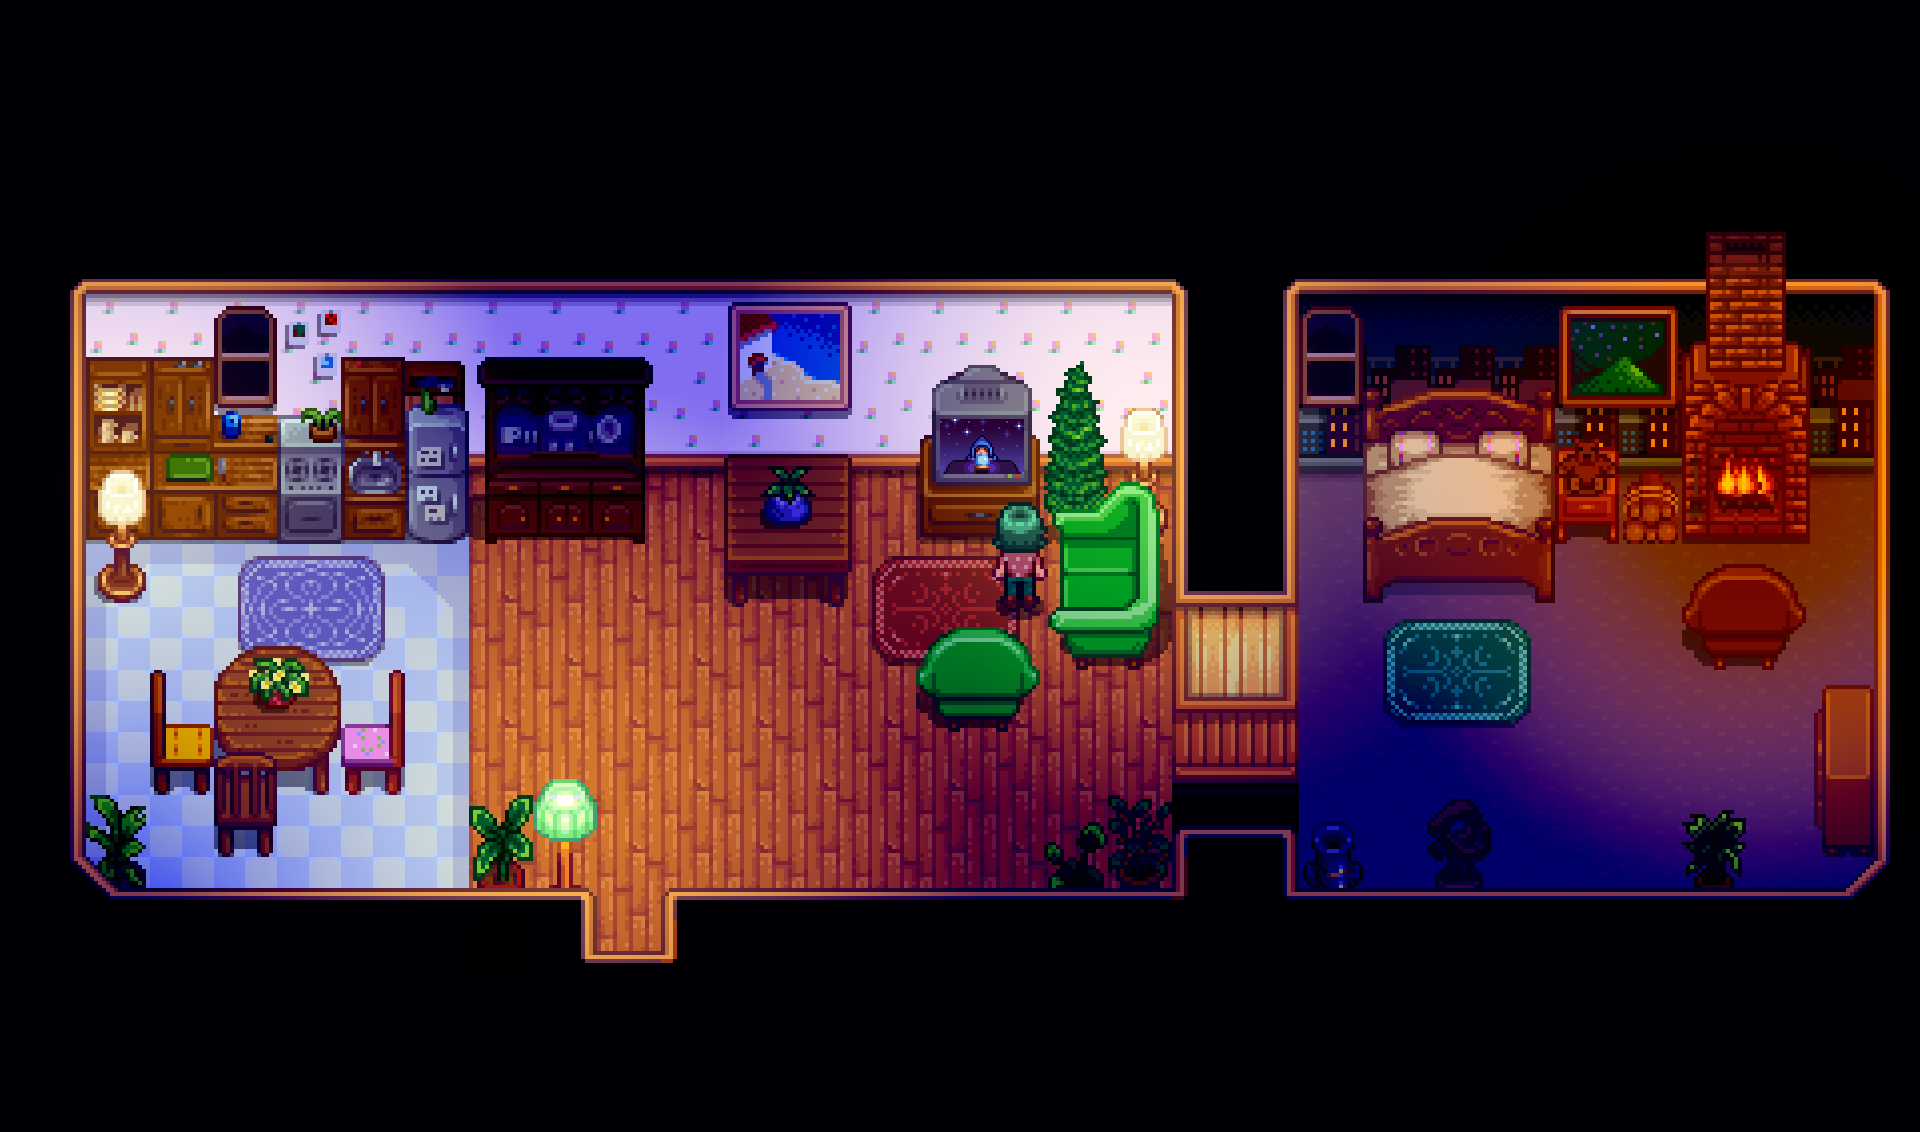 House design stardew valley - As Well As Being A Beautifully Designed Stardew Valley Is Also Just Plain Beautiful The Pixel Art Style Is Simple But Charming And Really Does A Great